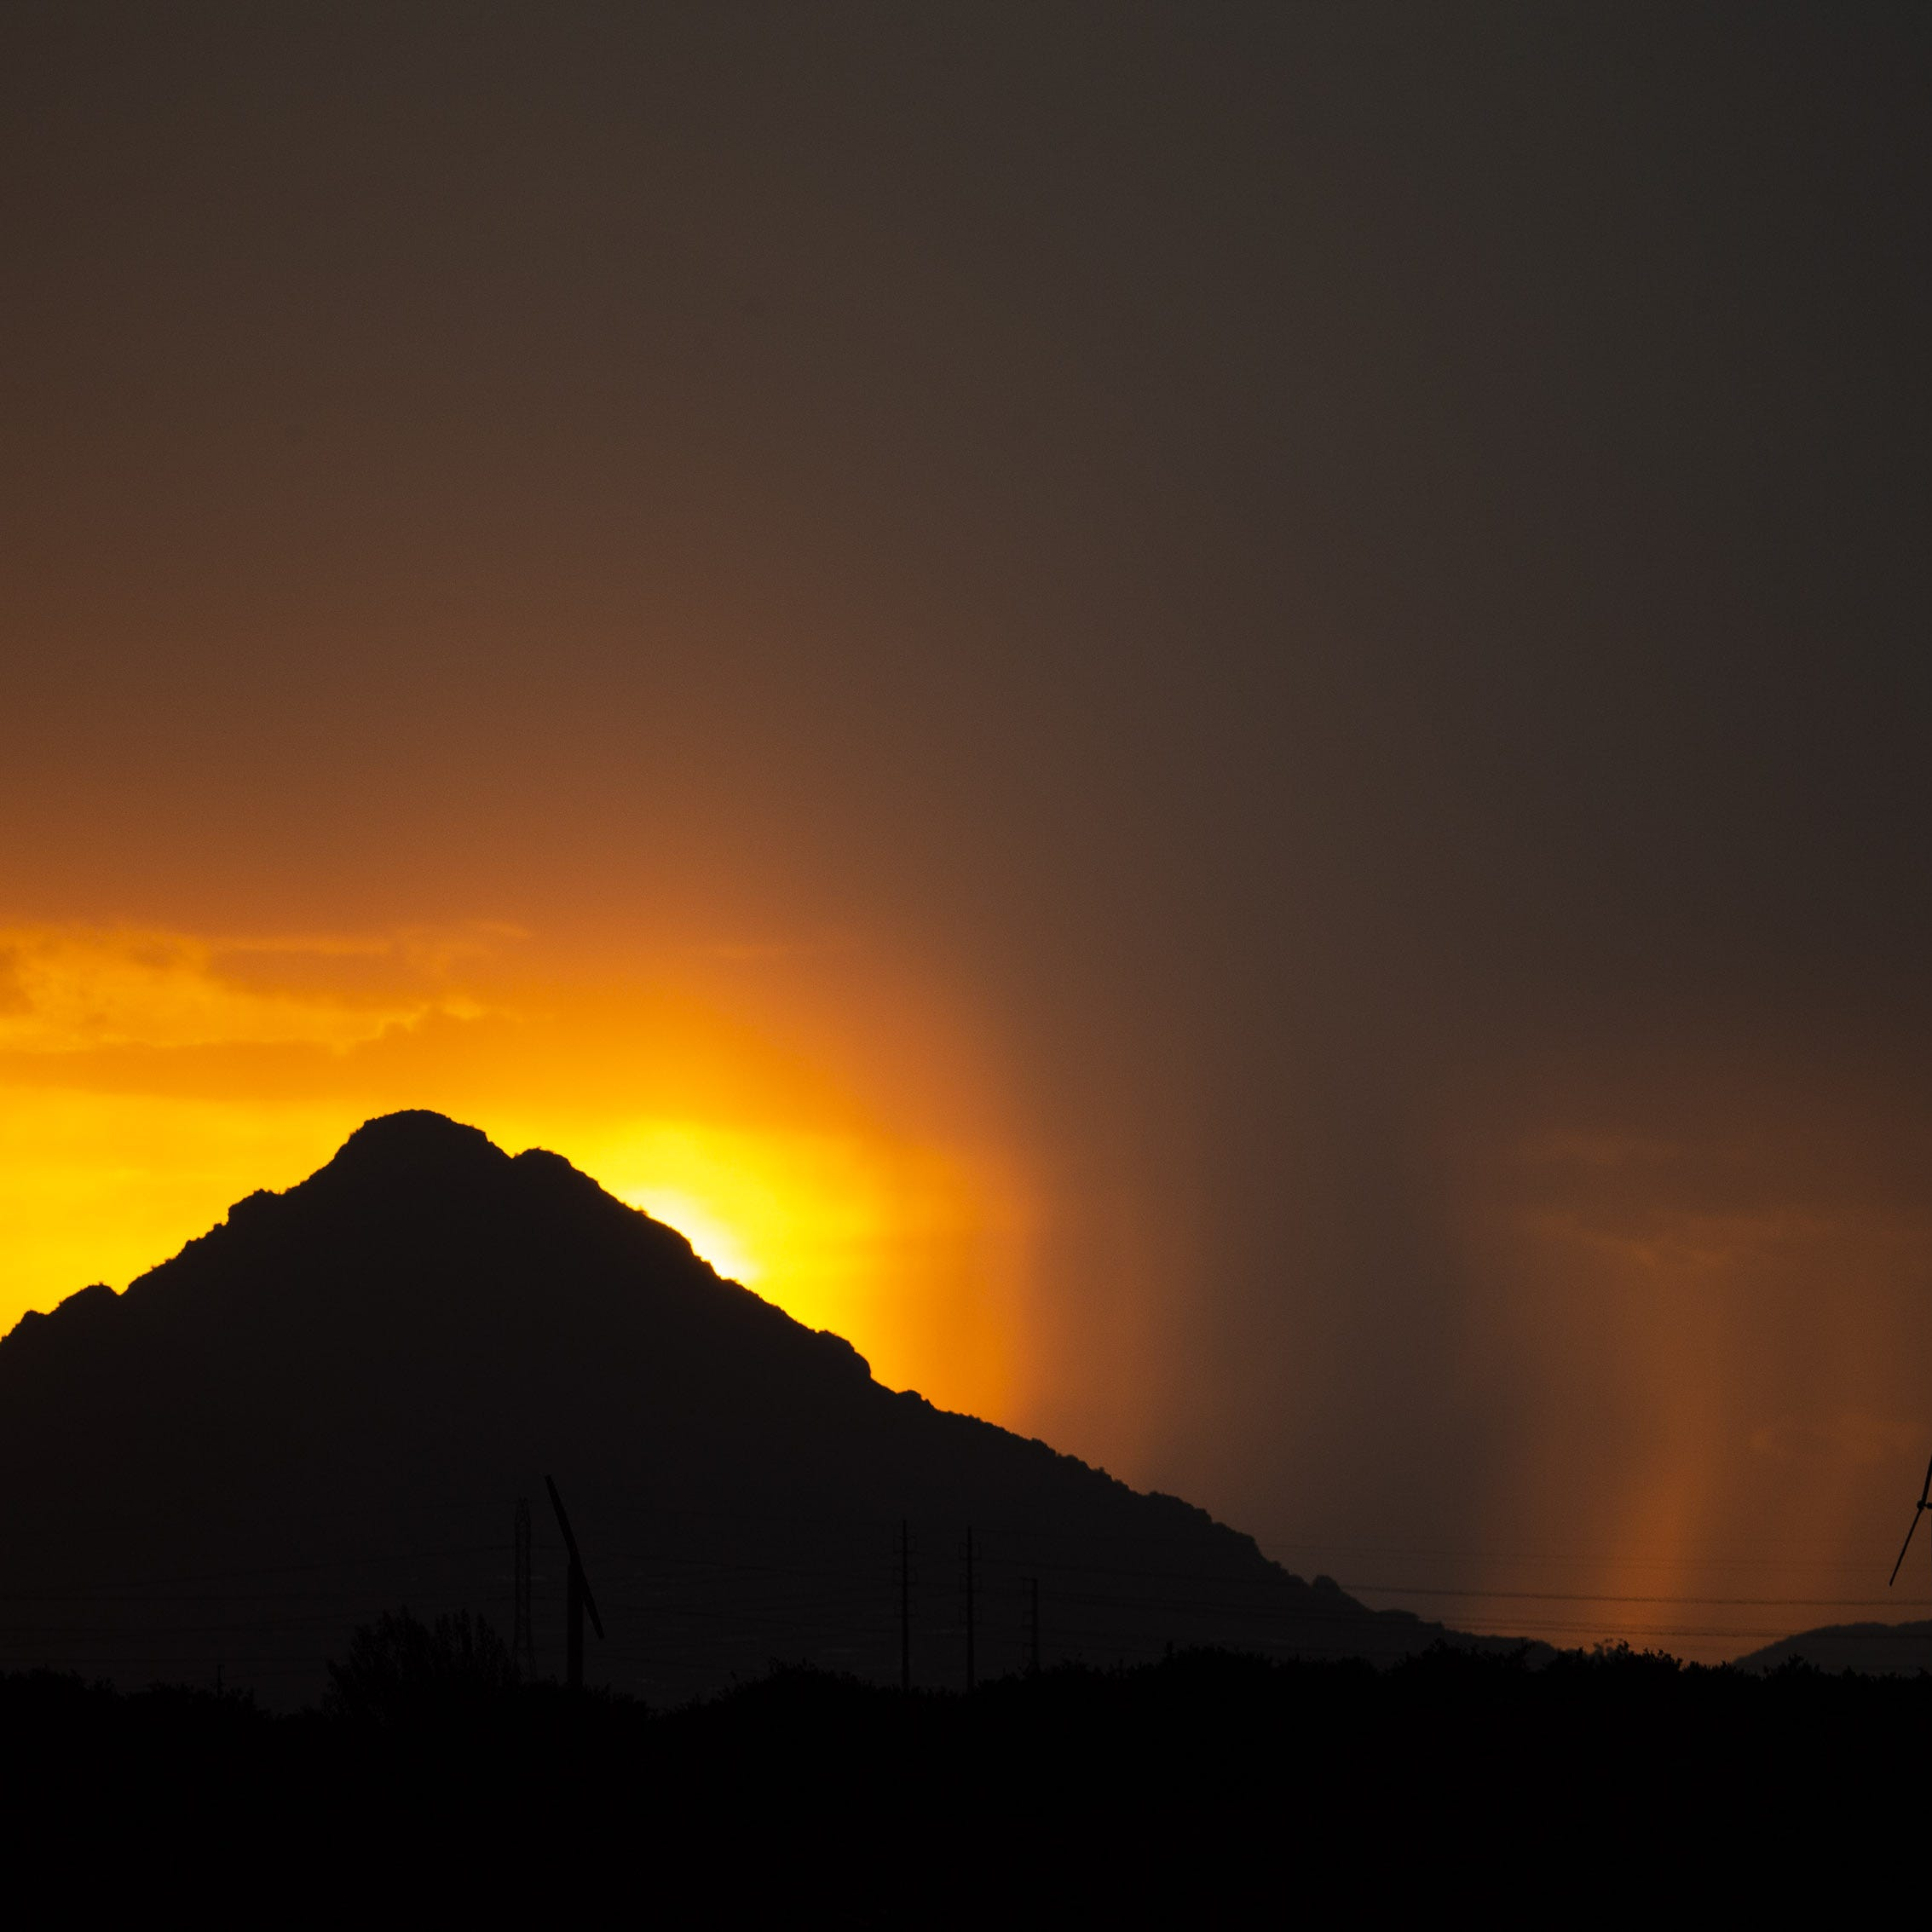 Arizona monsoon 2018: Is the rainy season ending?